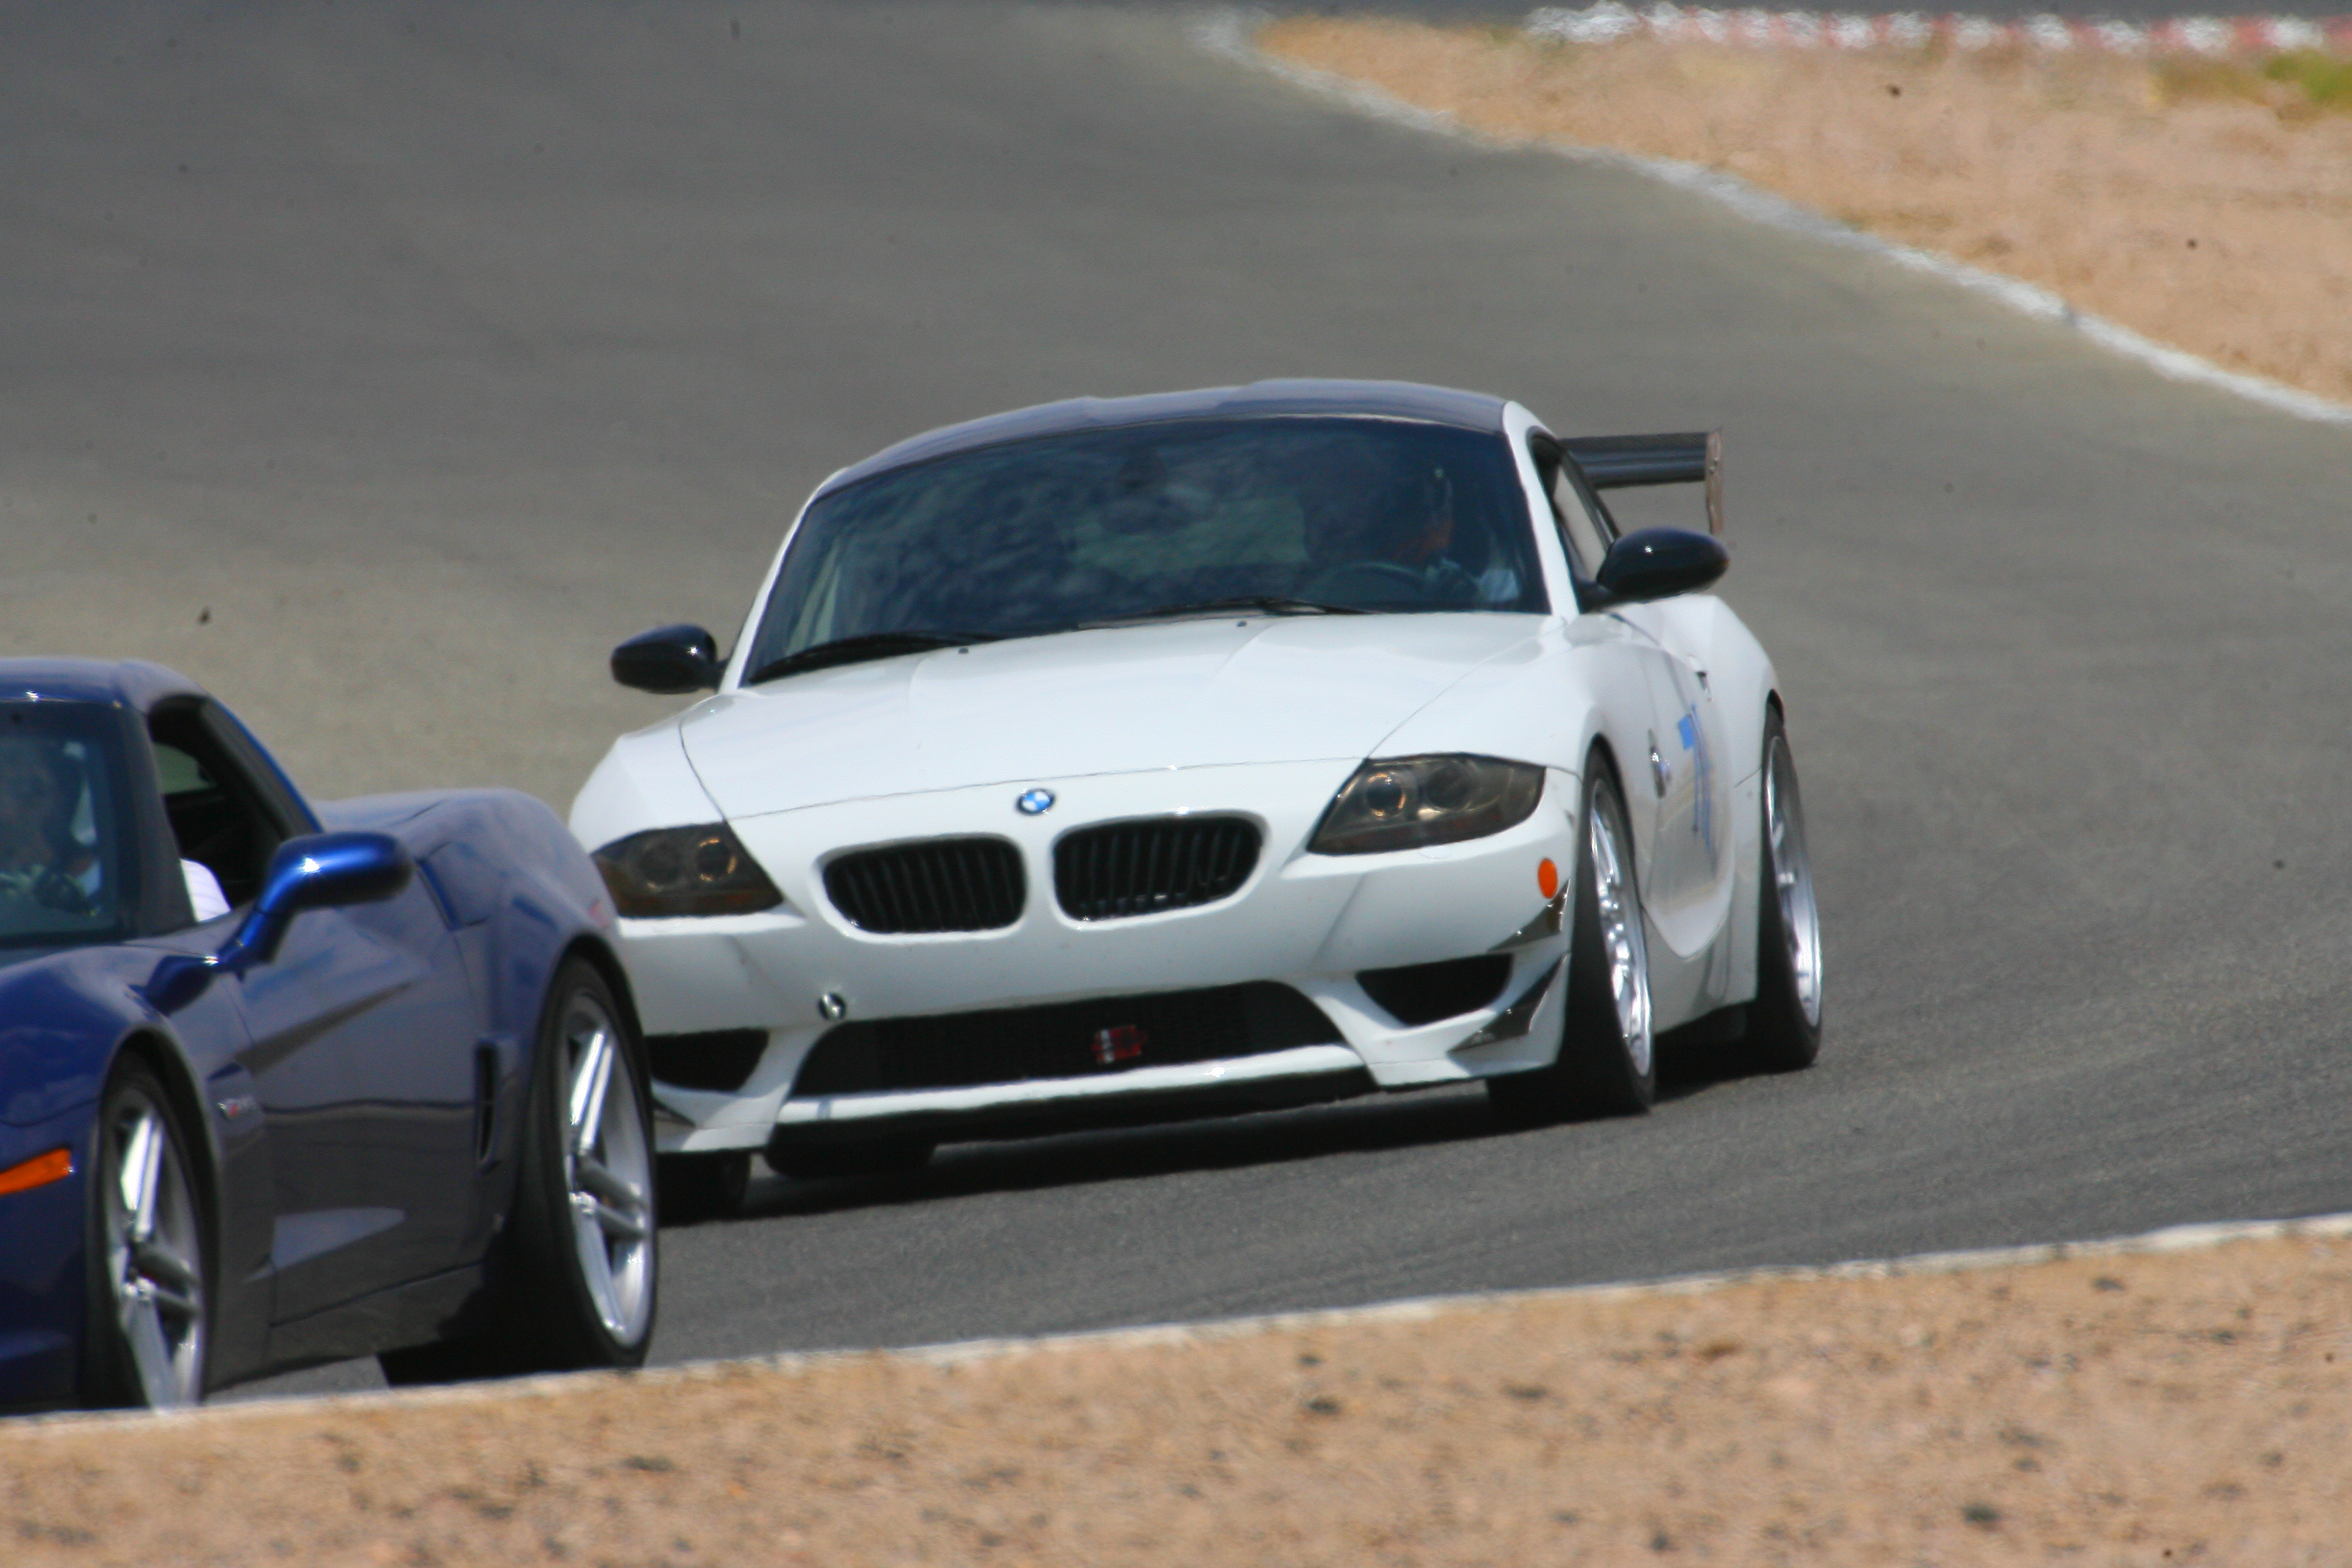 Z4 Mcoupe Is More Than A Capable Track Car Bmw M5 Forum And M6 Forums